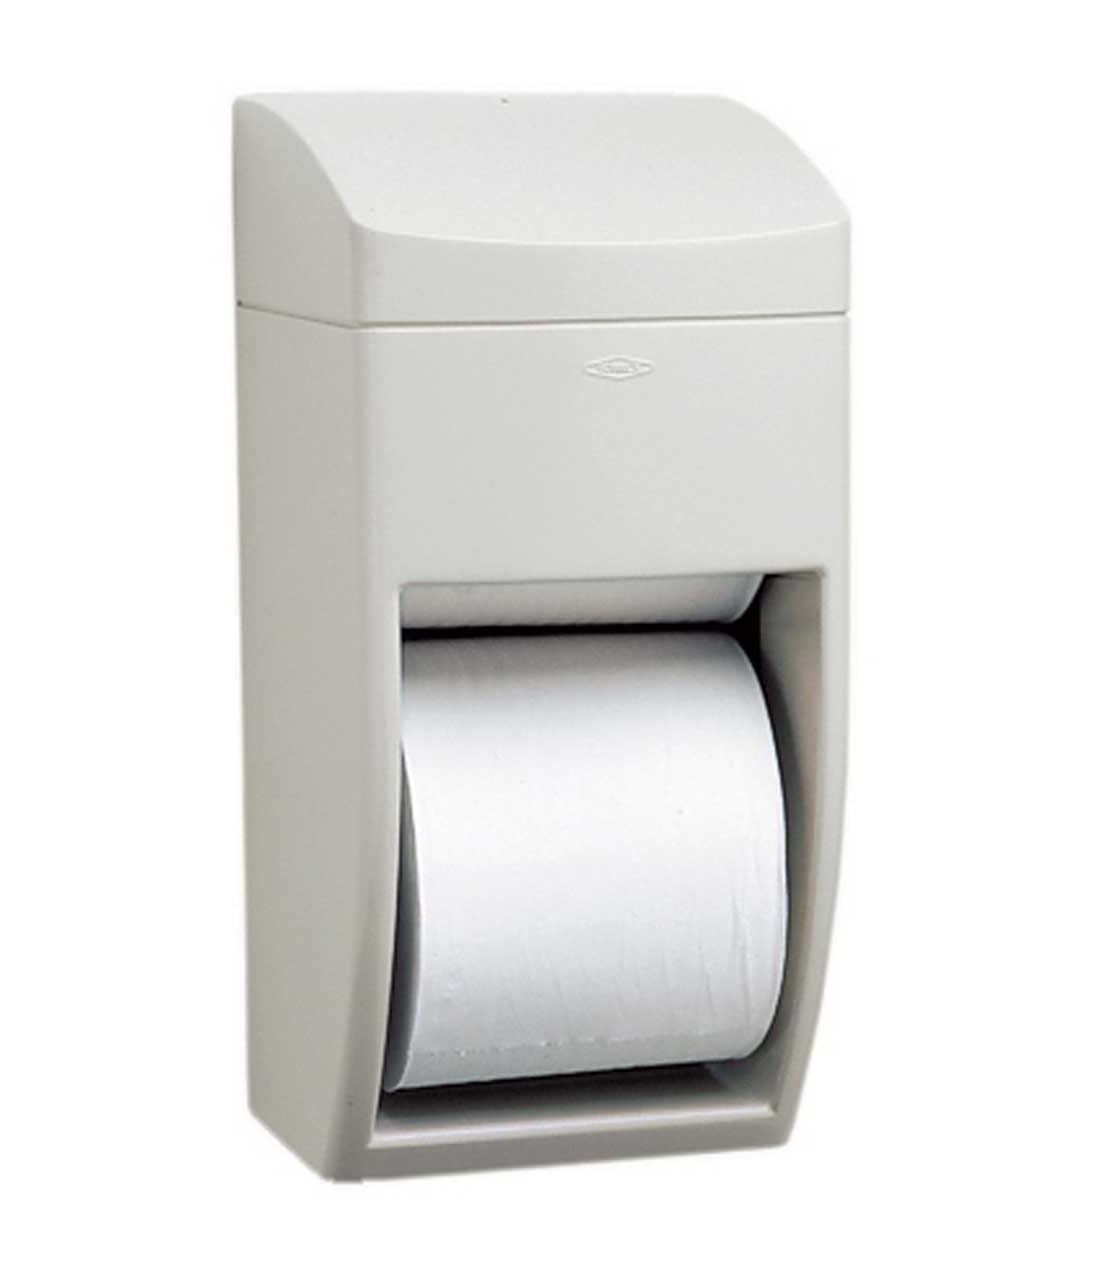 Bobrick B-5288 MatrixSeries™ Multi-Roll Toilet Tissue Dispenser